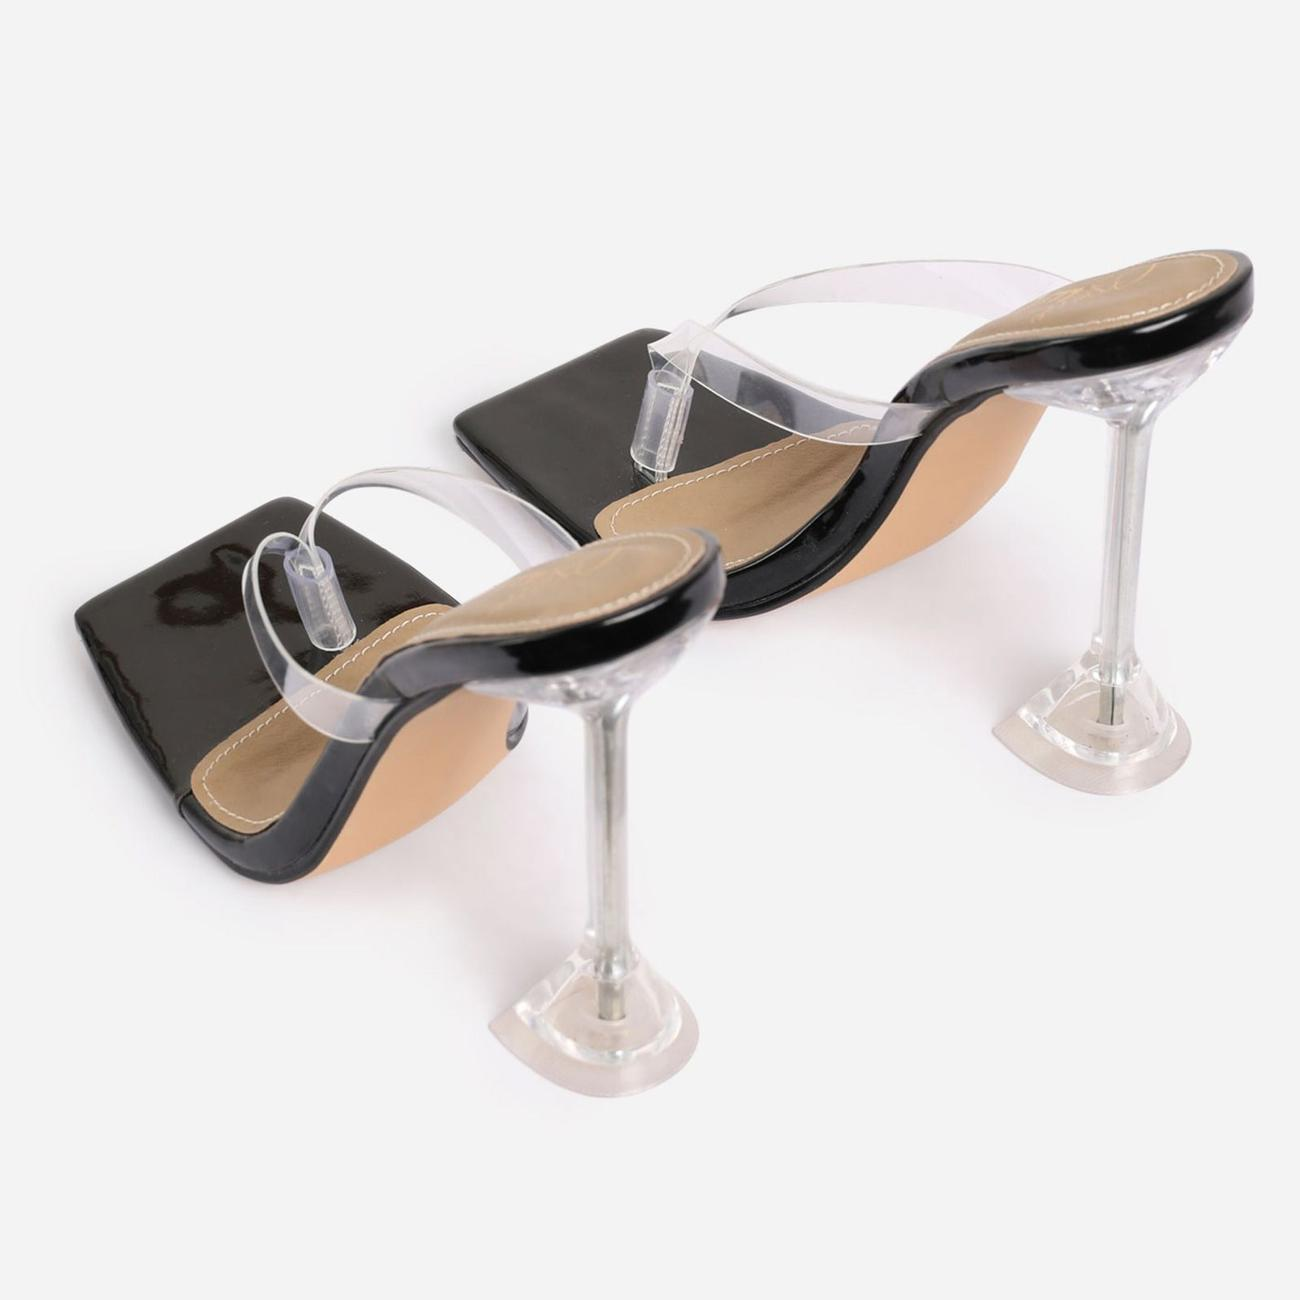 Jalen Square Toe Thong Clear Perspex Pyramid Heel Mule In Black Patent Image 3